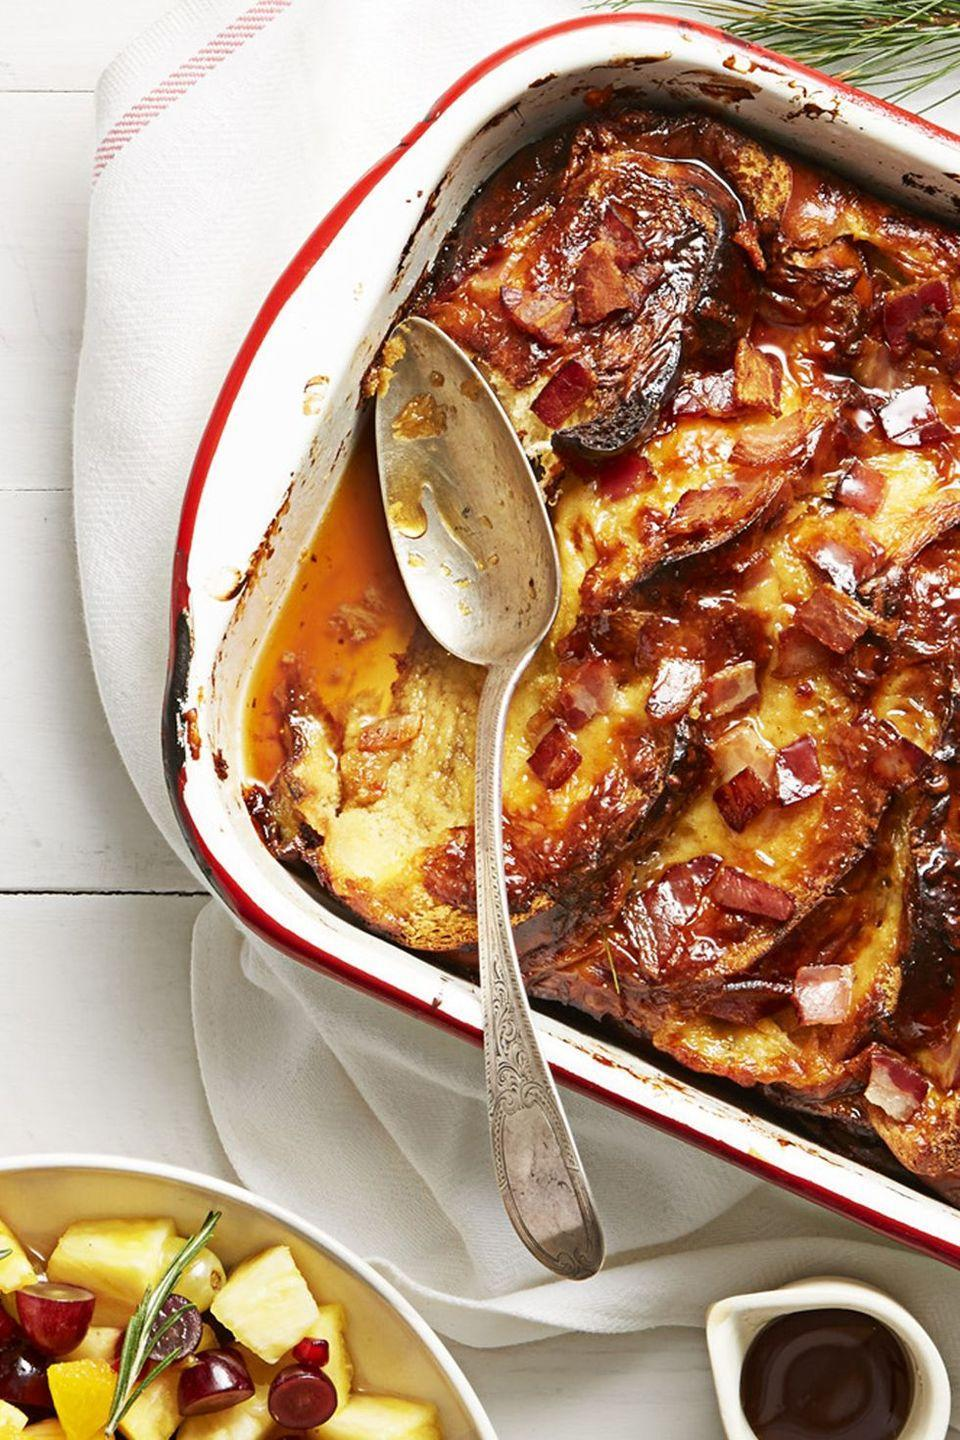 "<p>Sweet slices of French Toast with heavenly pieces of bacon doused in maple syrup? Count us in.</p><p><em><a href=""https://www.goodhousekeeping.com/food-recipes/easy/a35799/bacon-french-toast-bake/"" rel=""nofollow noopener"" target=""_blank"" data-ylk=""slk:Get the recipe for Bacon French Toast Bake »"" class=""link rapid-noclick-resp"">Get the recipe for Bacon French Toast Bake »</a></em></p>"